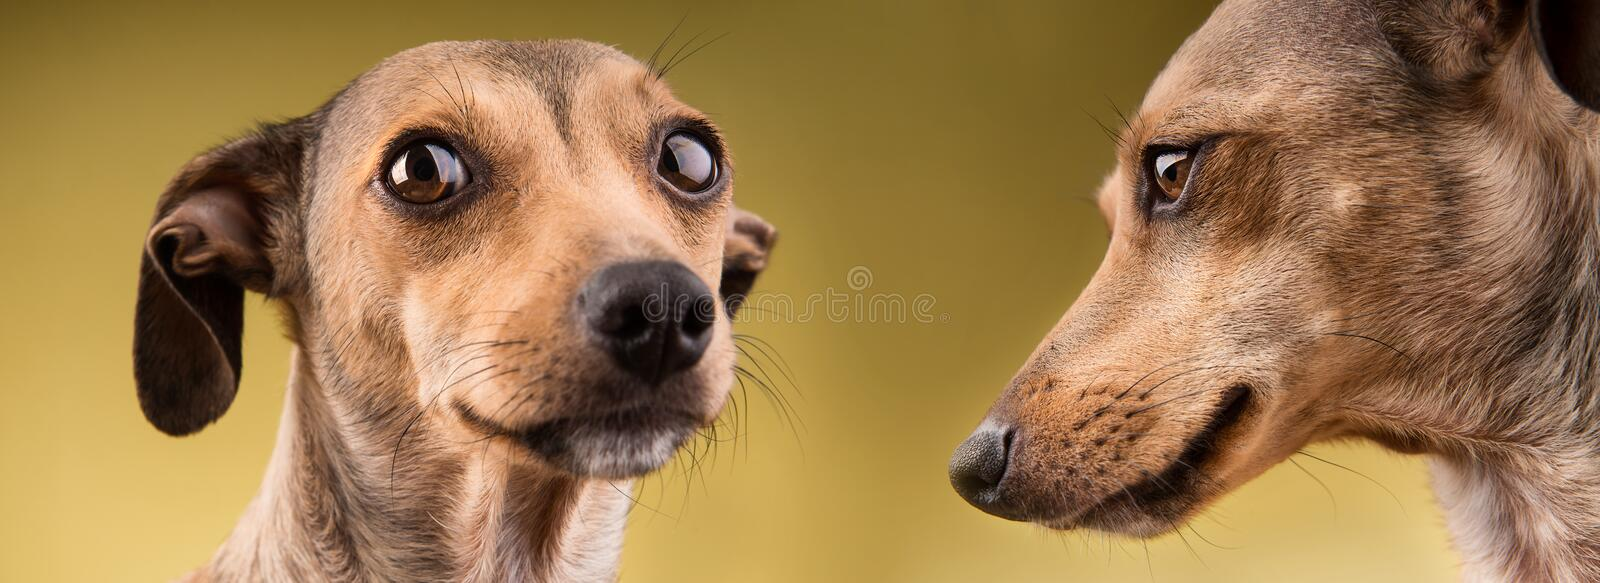 Two funny dogs portrait stock images